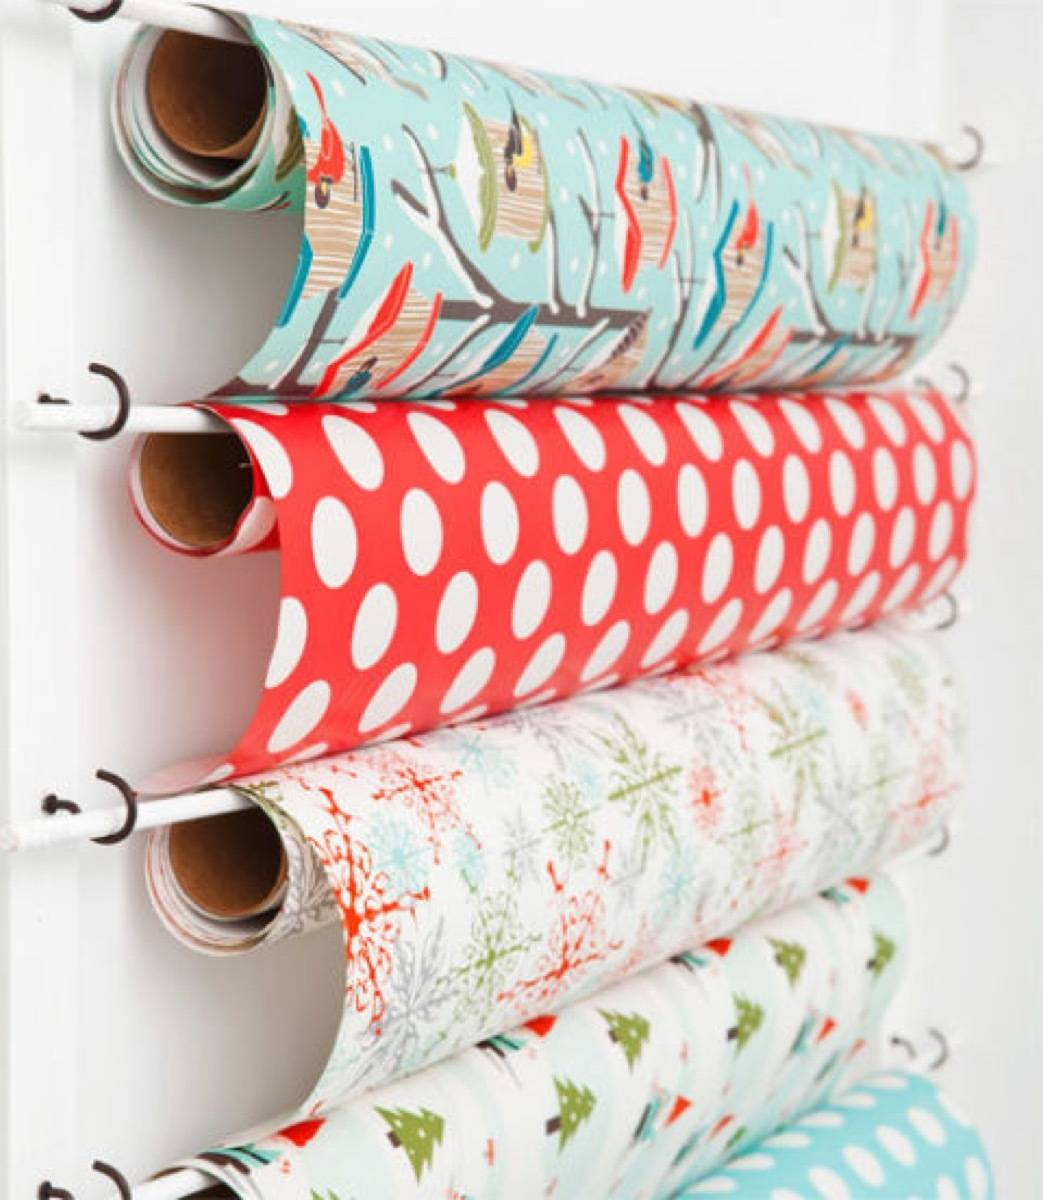 Wrapping paper can be conveniently stored on dowel rods and hooks | 72 Organization Tips and Projects for Every Space in Your Home